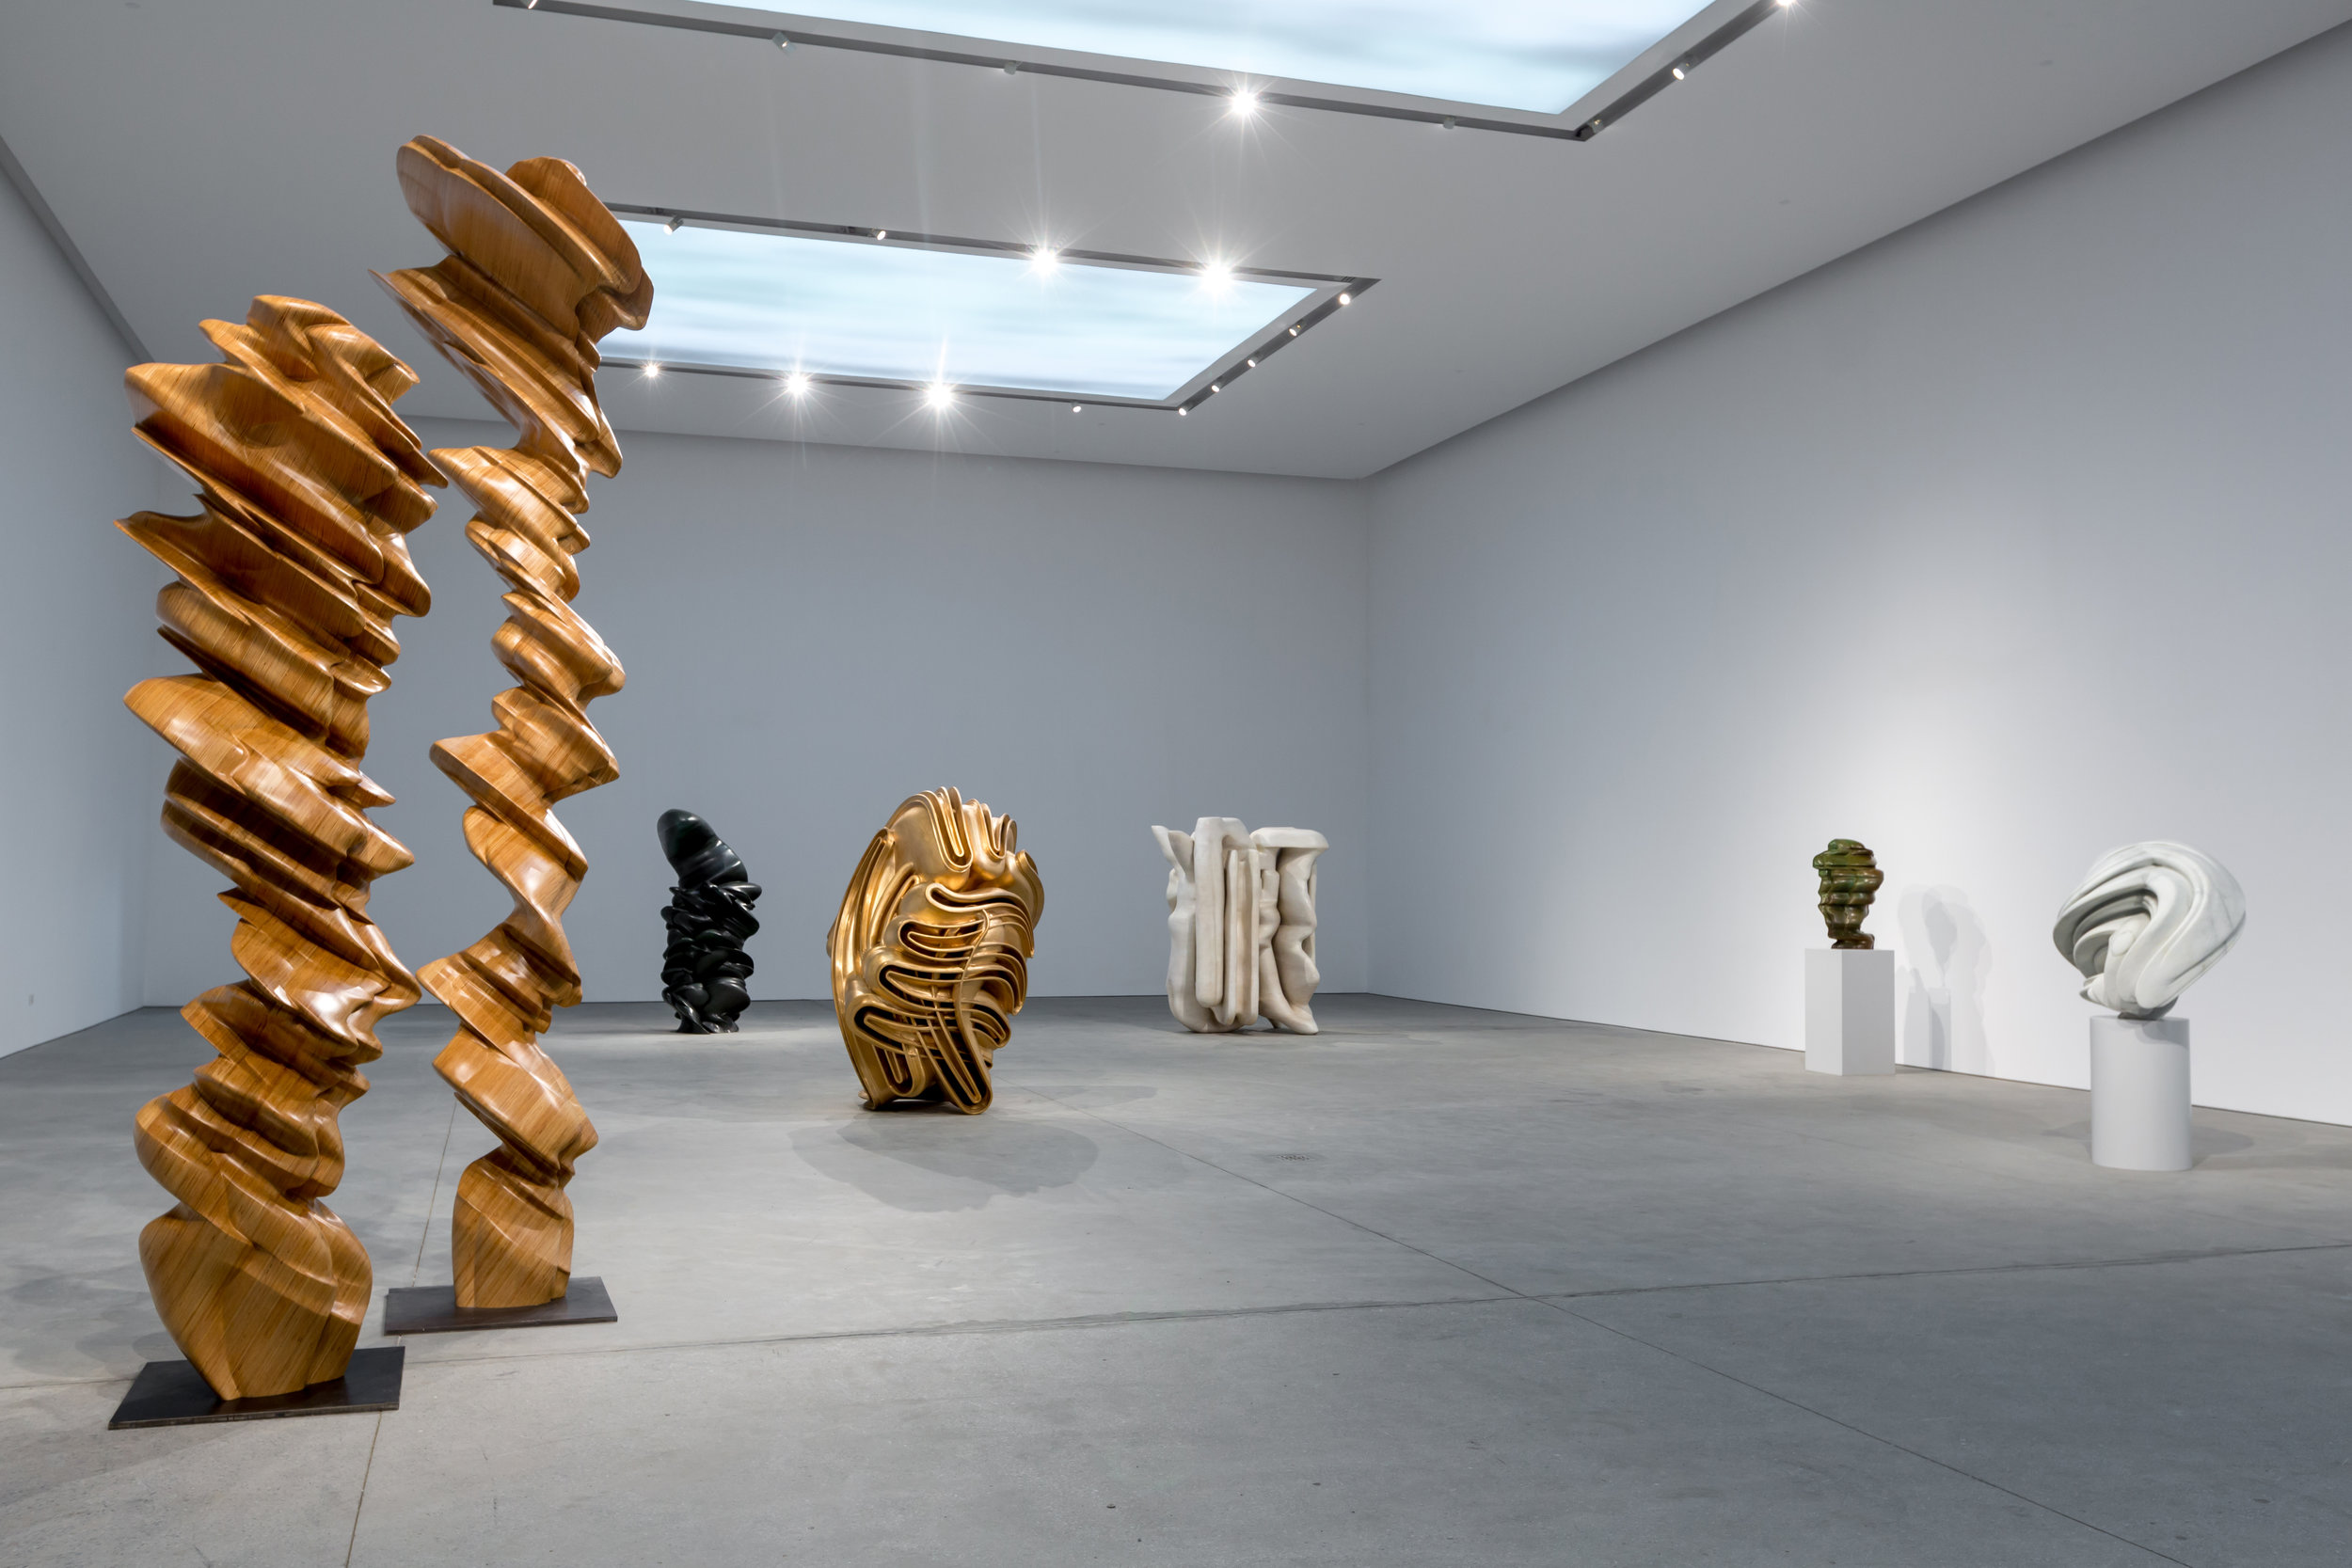 Installation views of Tony Cragg's solo show at Leila Heller Gallery, Dubai, March 2017. Courtesy of Leila Heller Gallery.